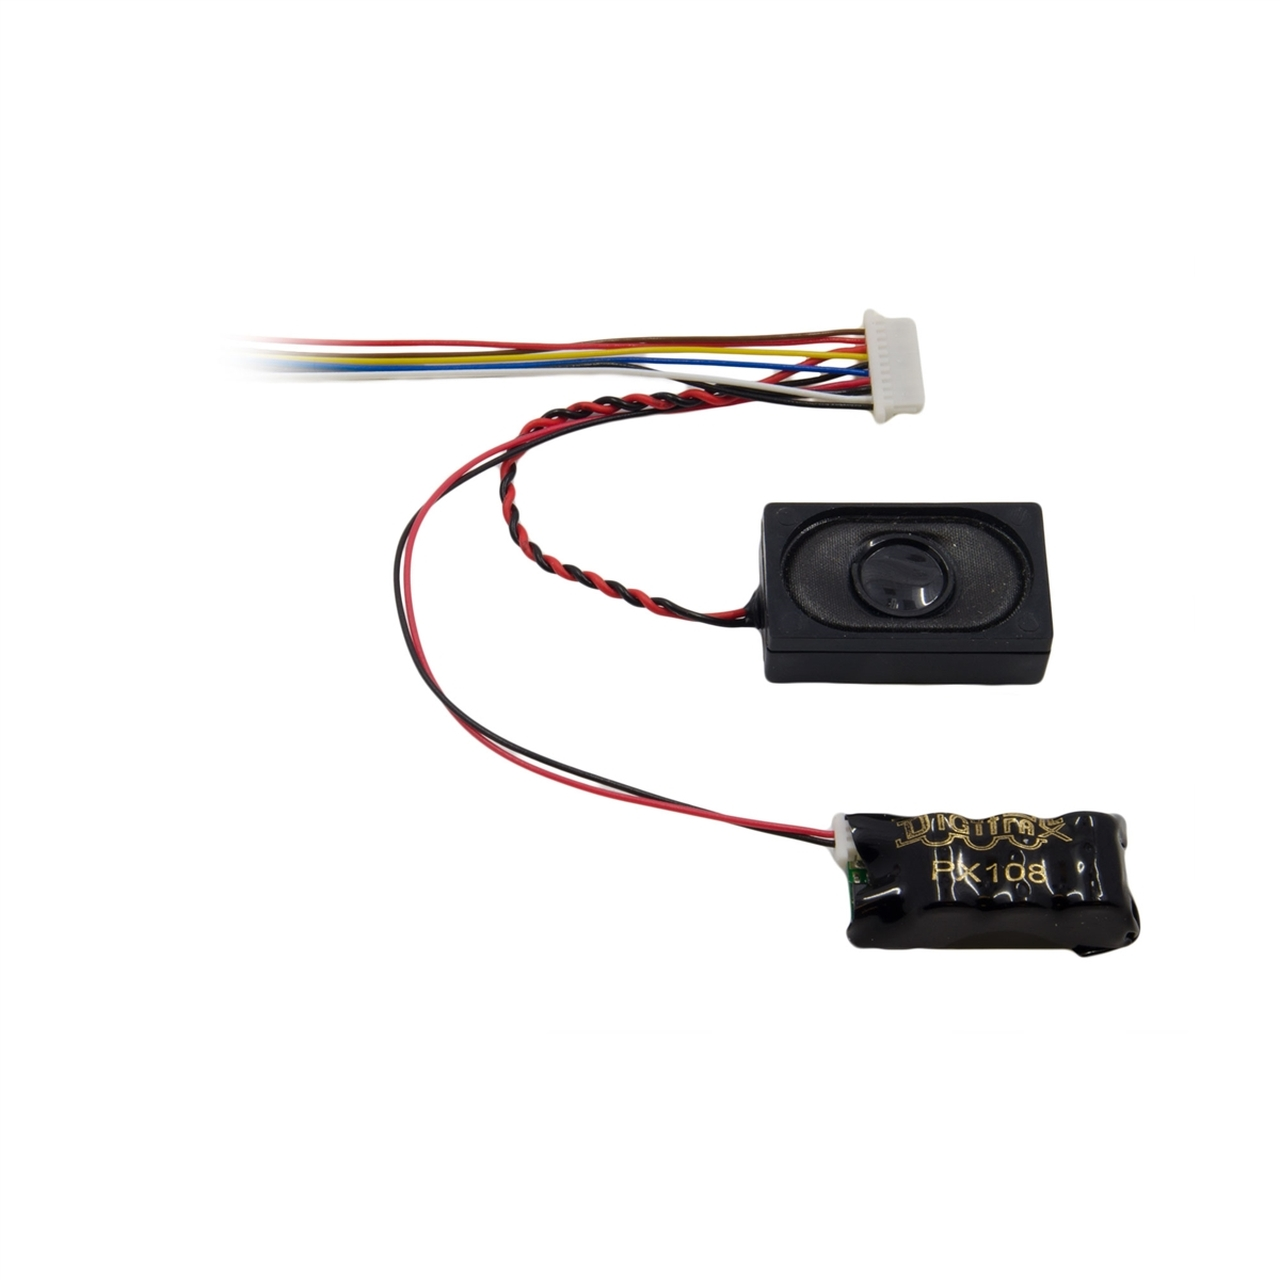 medium resolution of digitrax px108 10 power xtender for use with digitrax decoders equipped with 10 pin sound harness modeltrainstuff com